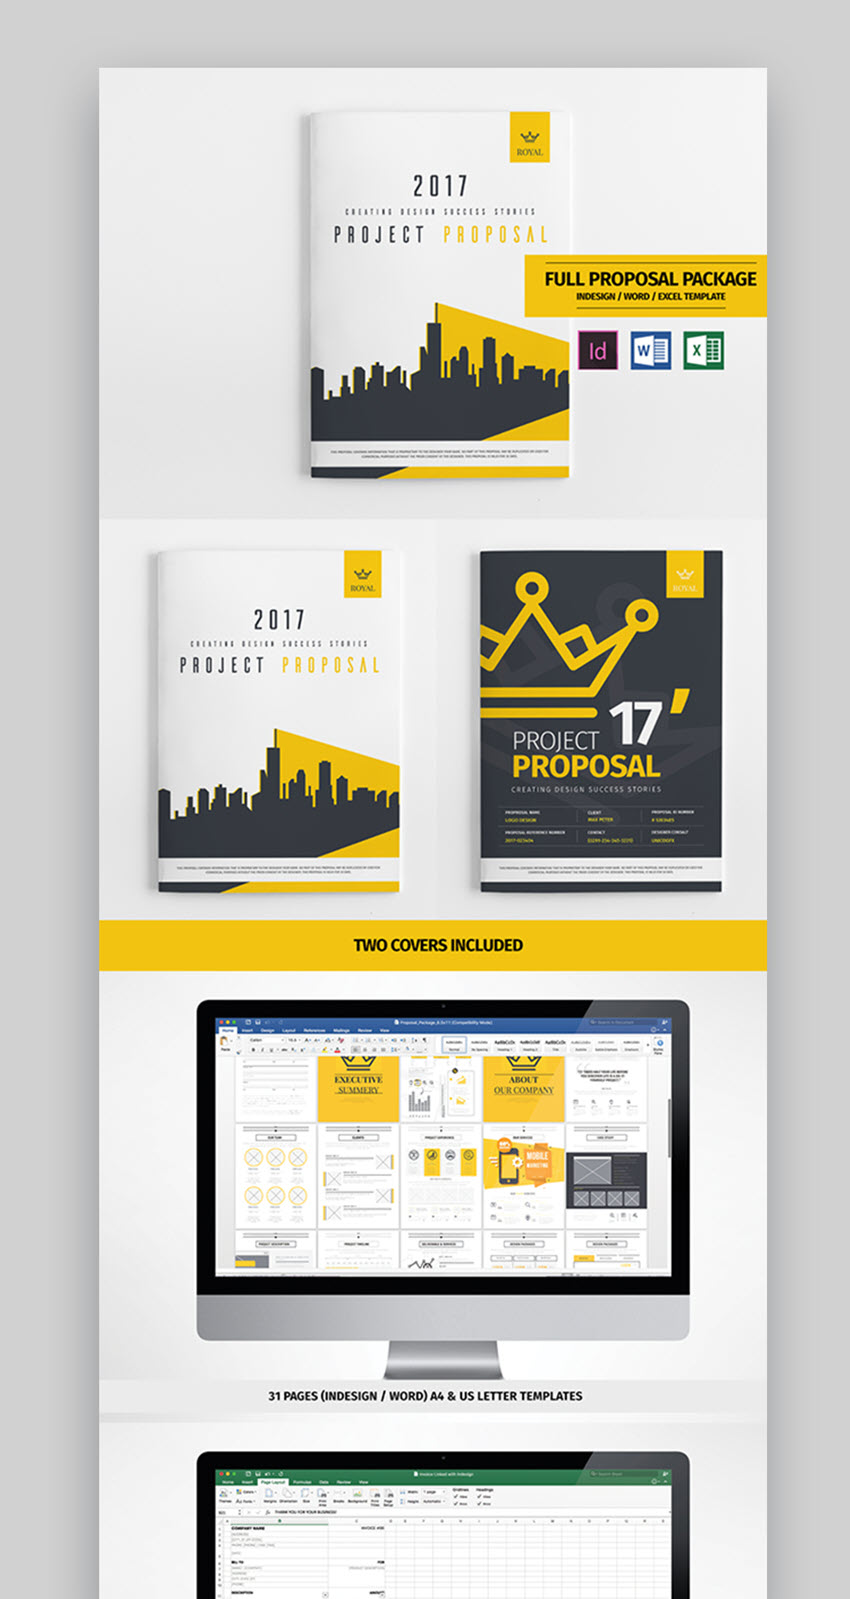 this professional proposal template boasts 31 pages choose from many and varied page designs to get your proposal message across